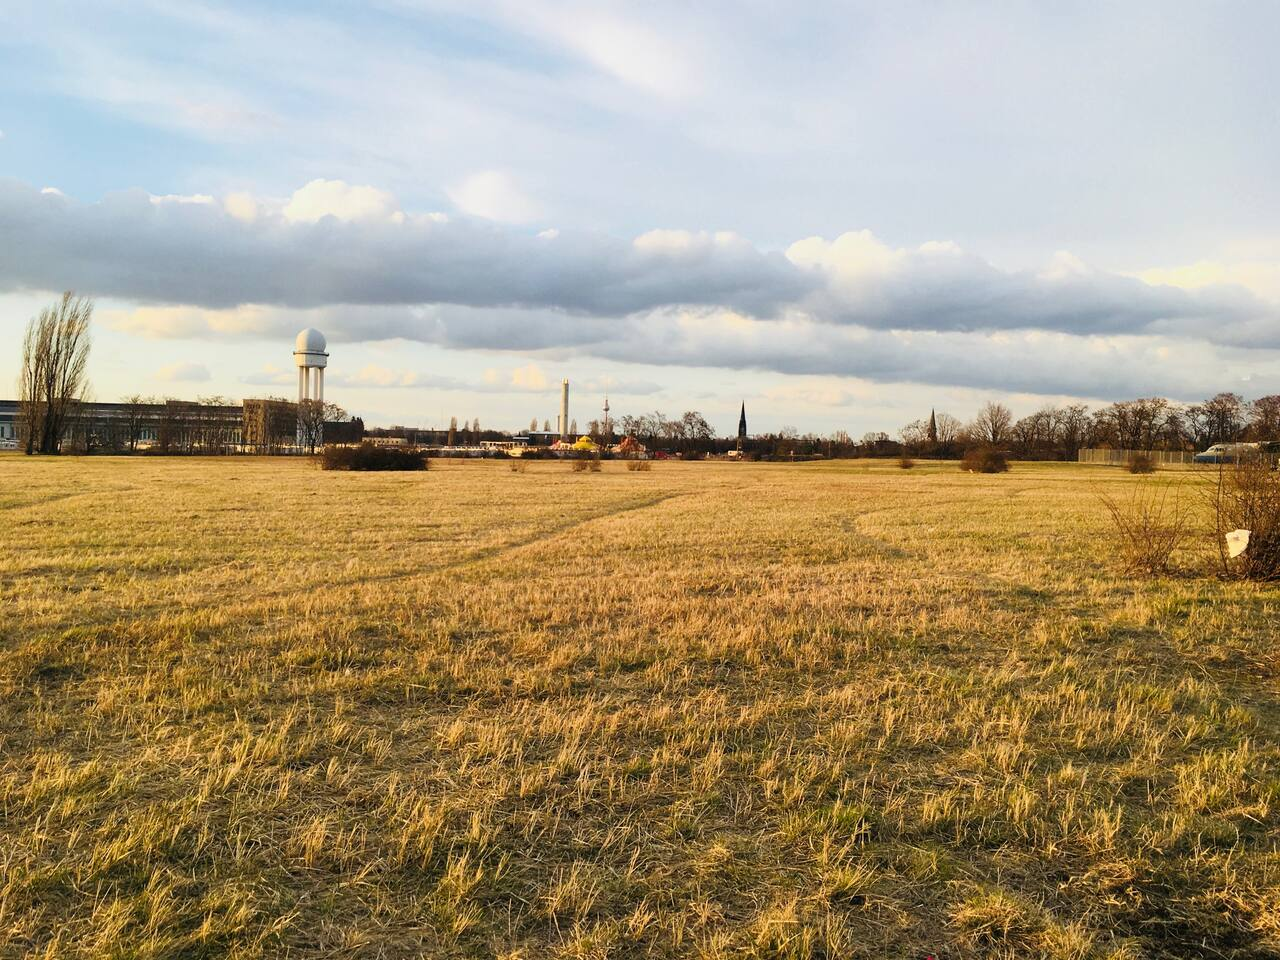 Right in Front of youre door: Metro-Station (1 Minute walk), Train-Station and the old Tempelhofer Feld/ Tempelhofer Airfield (3 minutes walk)